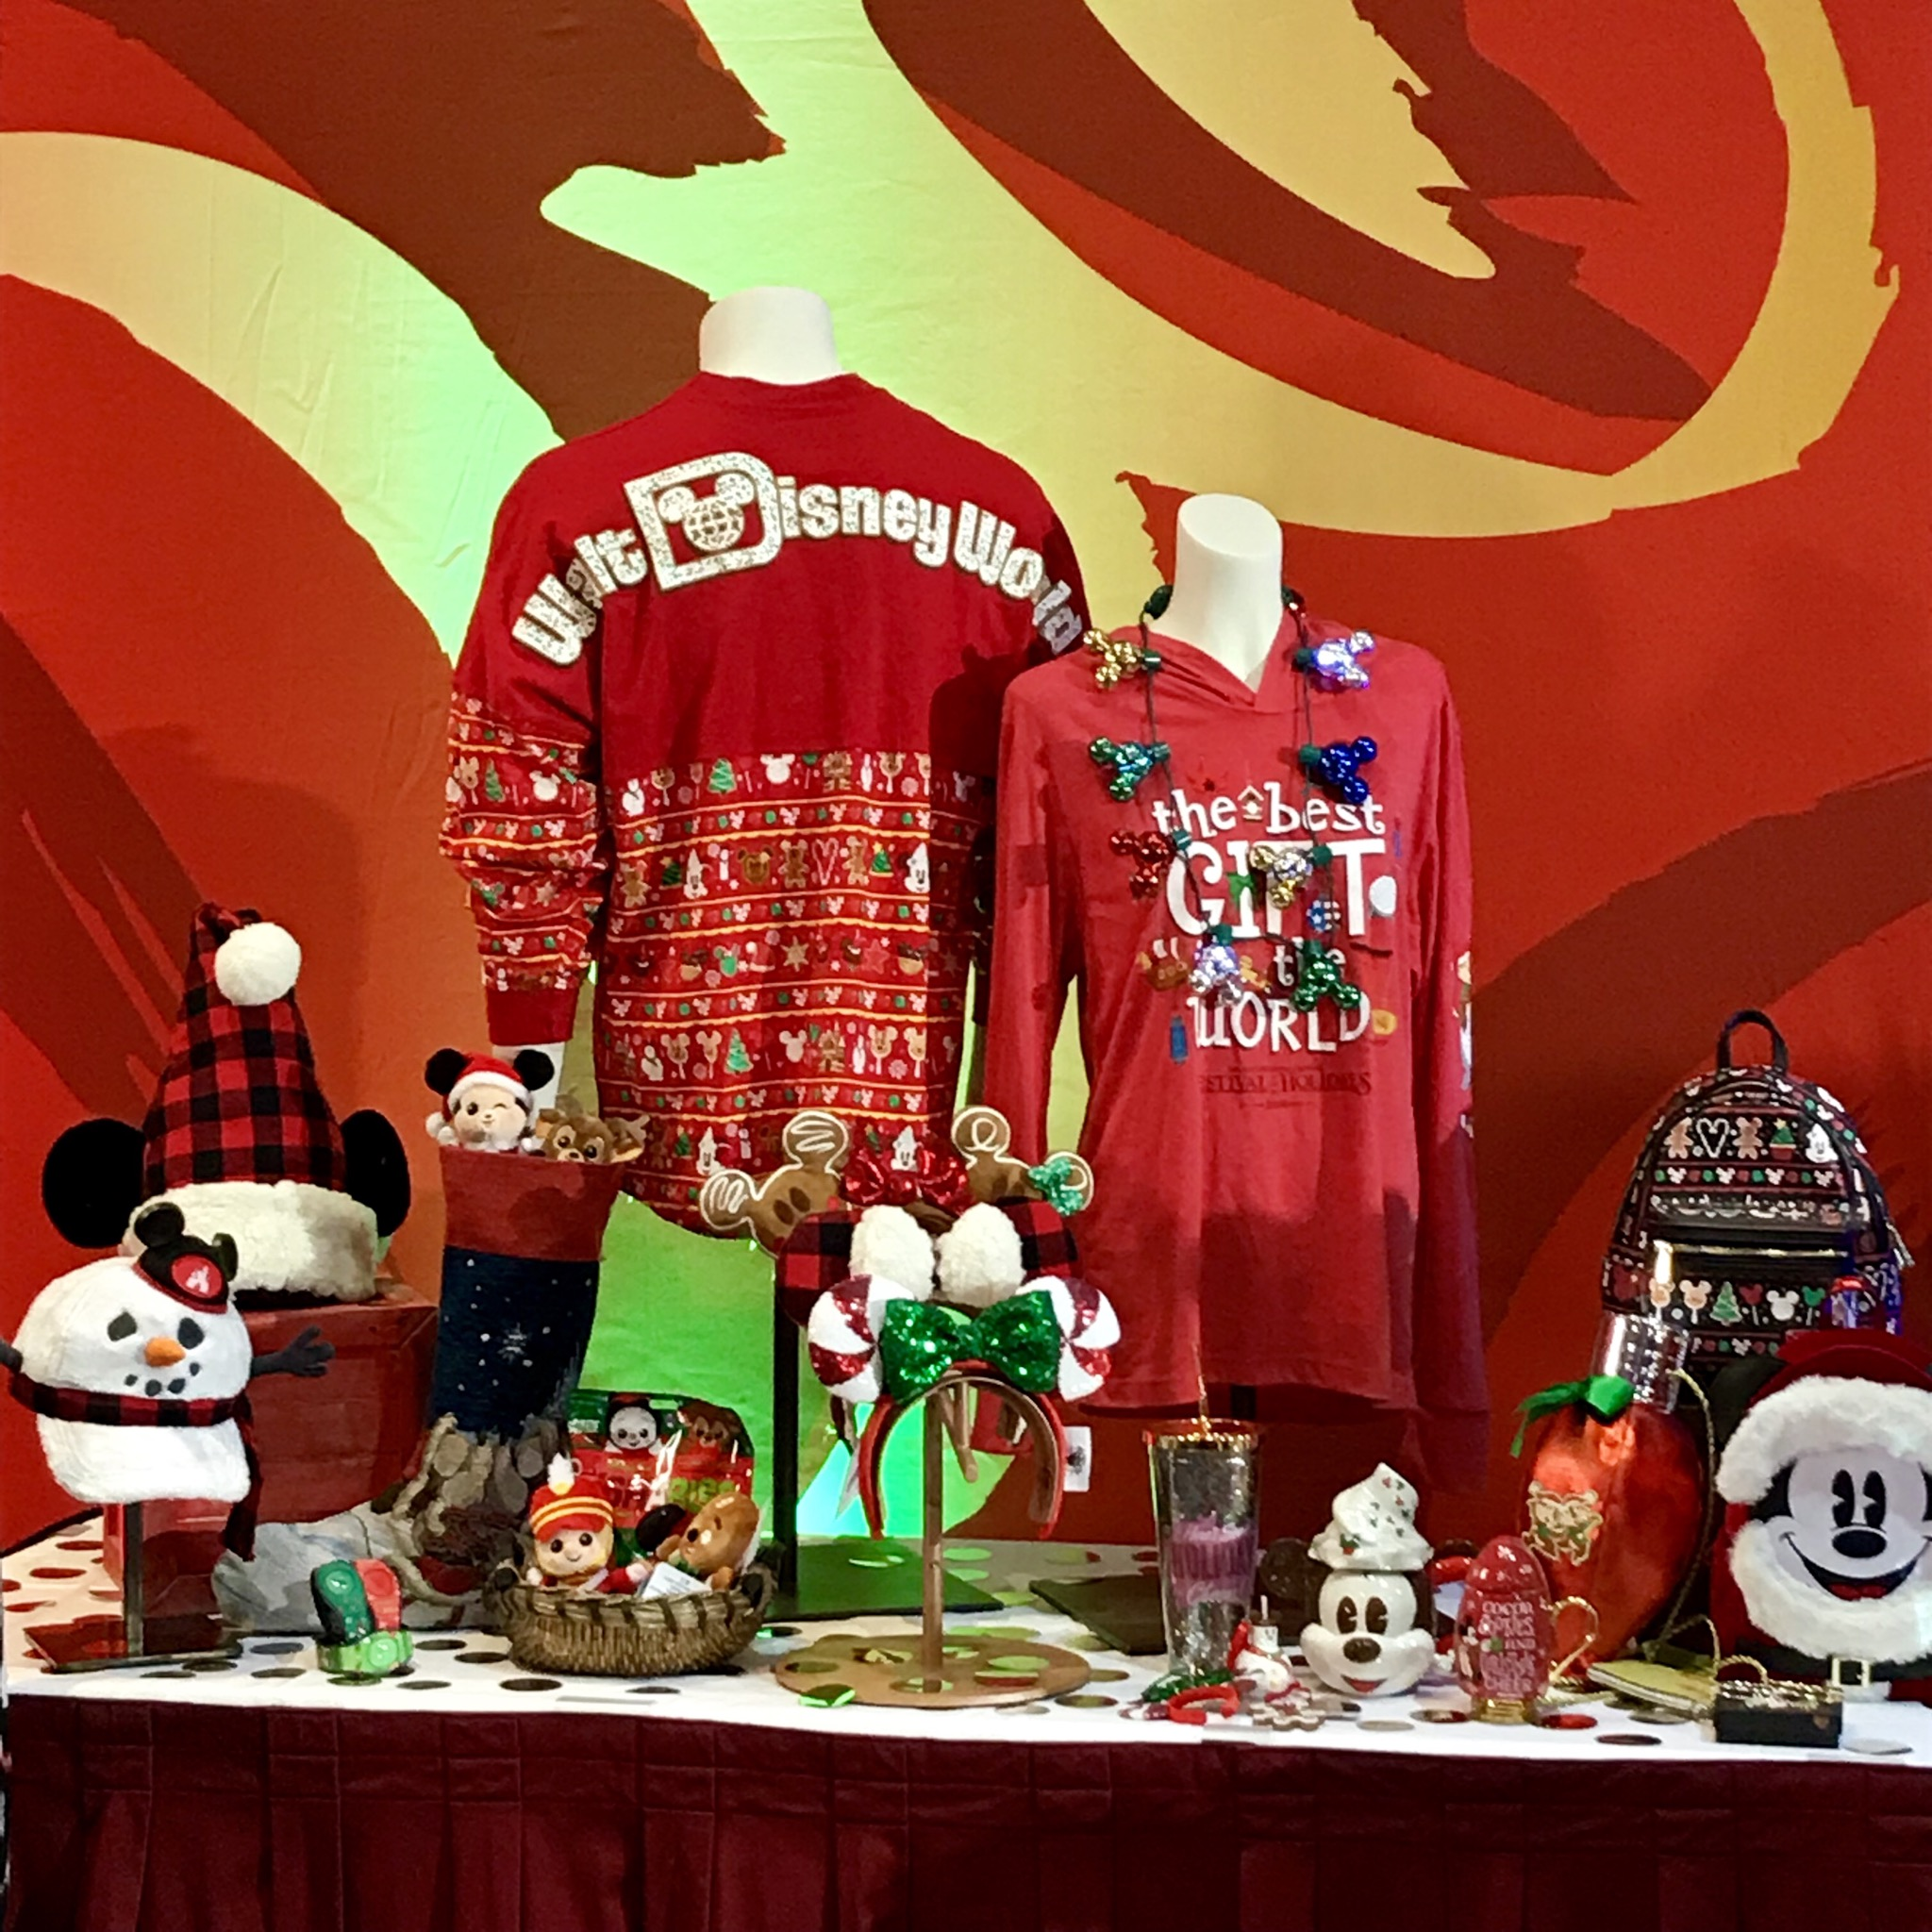 Fabulous Disney Holiday Merchandise Revealed At Disney's Christmas In July 1